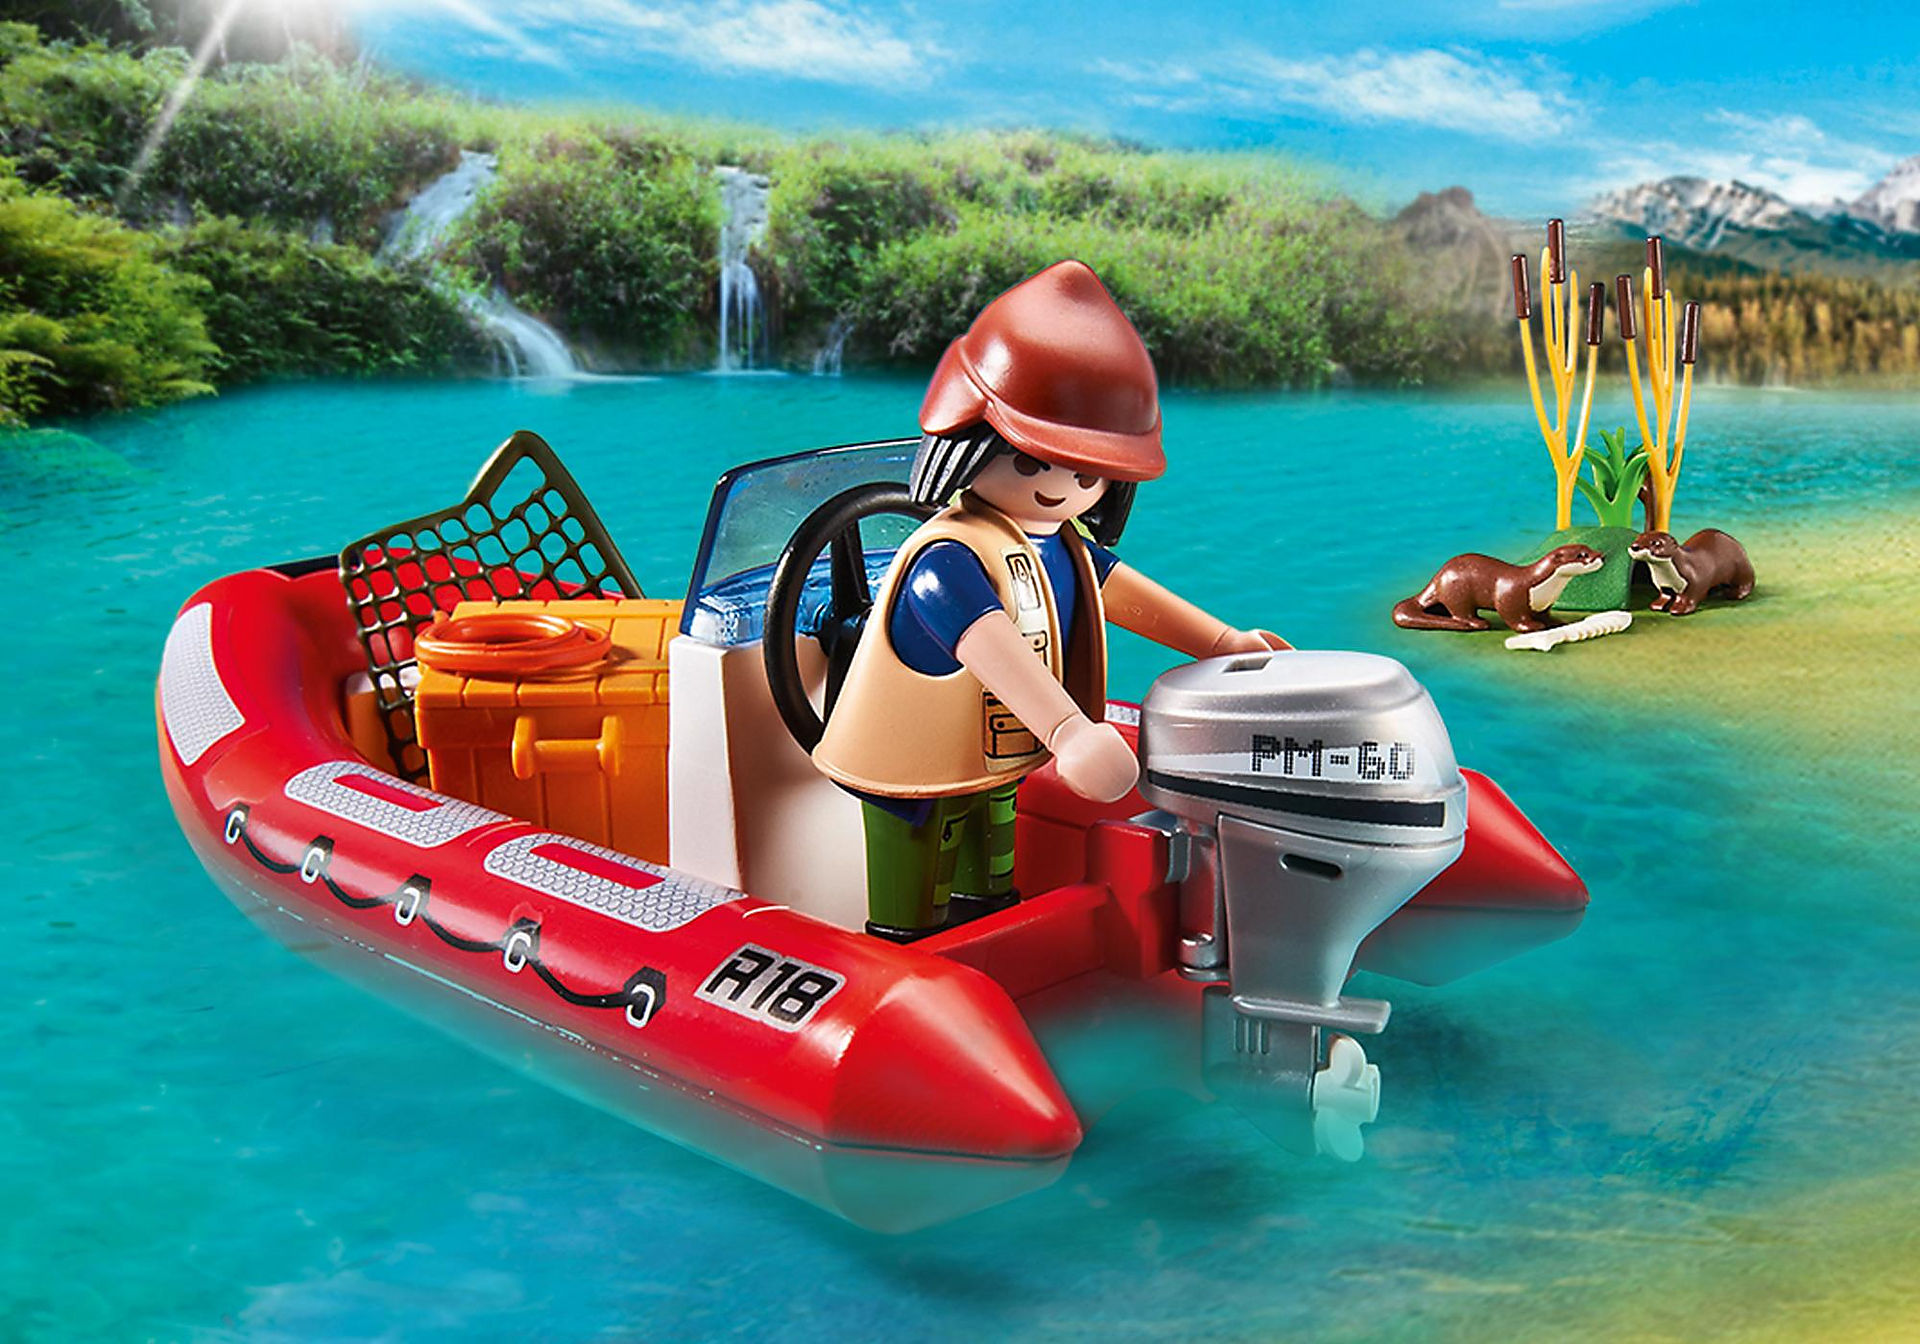 http://media.playmobil.com/i/playmobil/5559_product_extra2/Inflatable Boat with Explorers